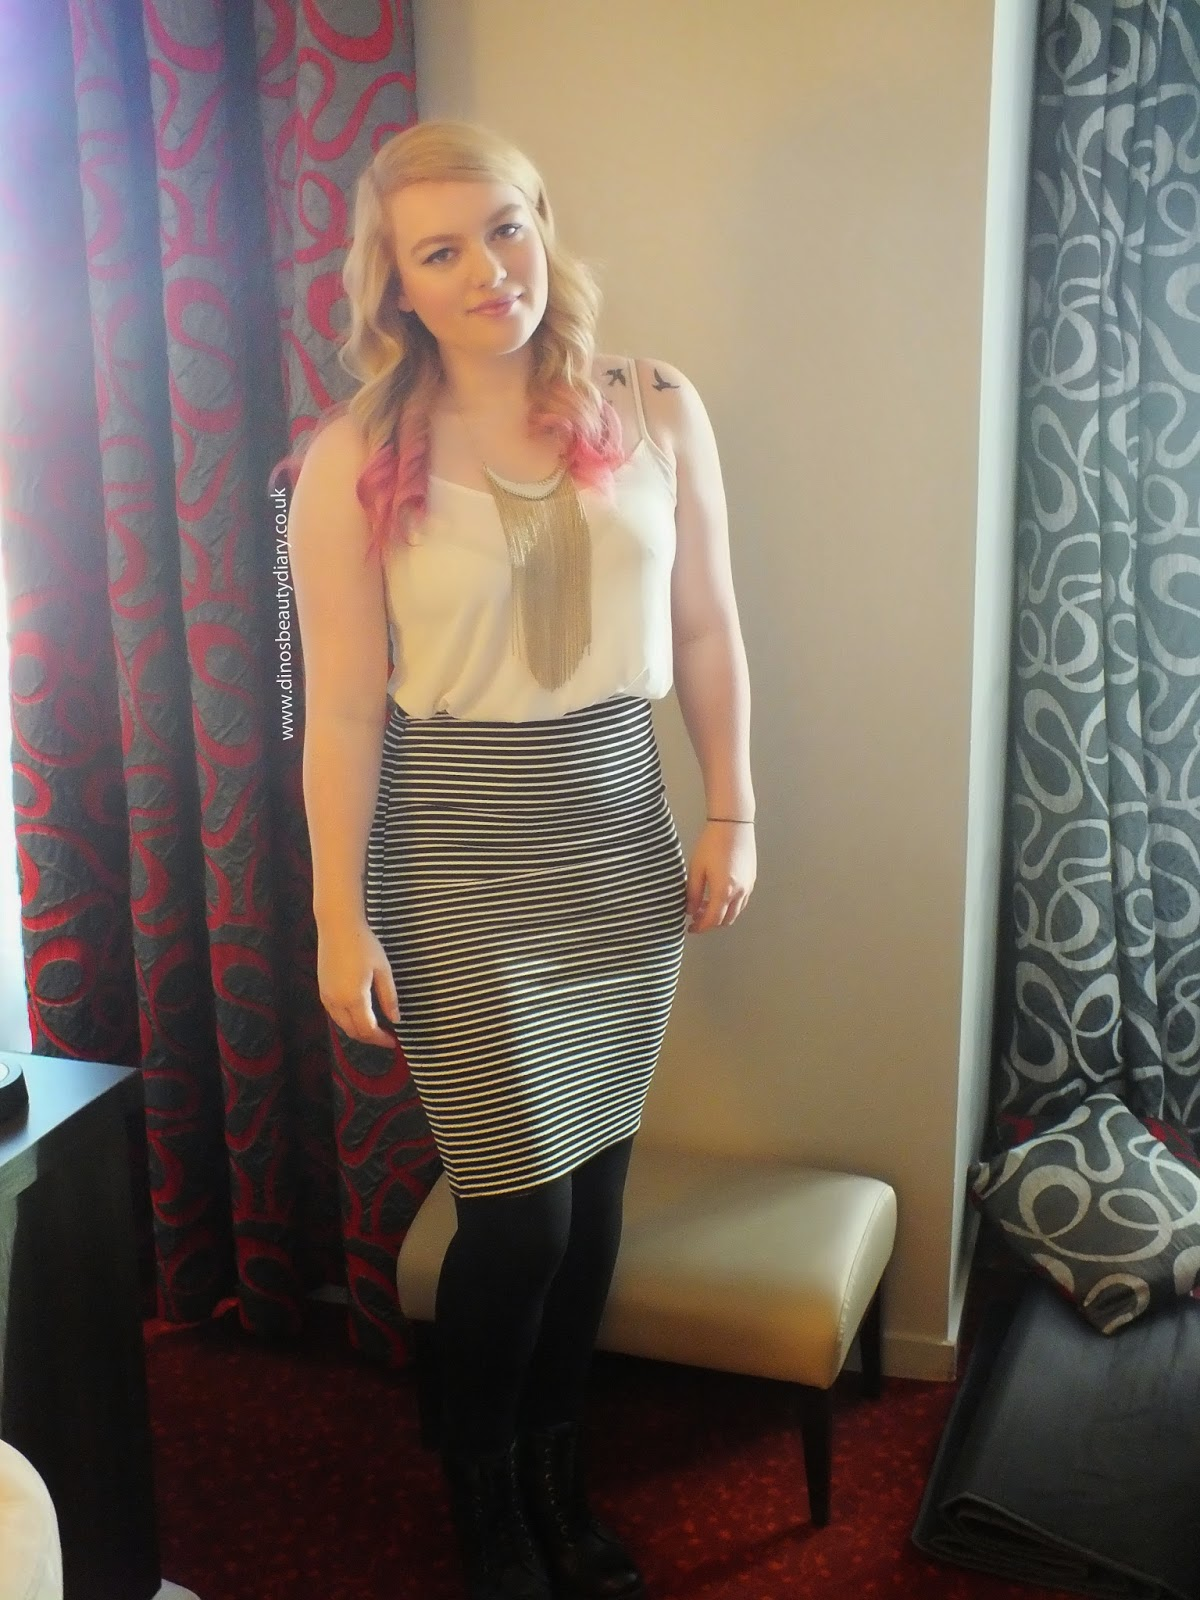 Dino's Beauty Diary - Hair Review - Bleach London 'The Big Pink' Hair Colour